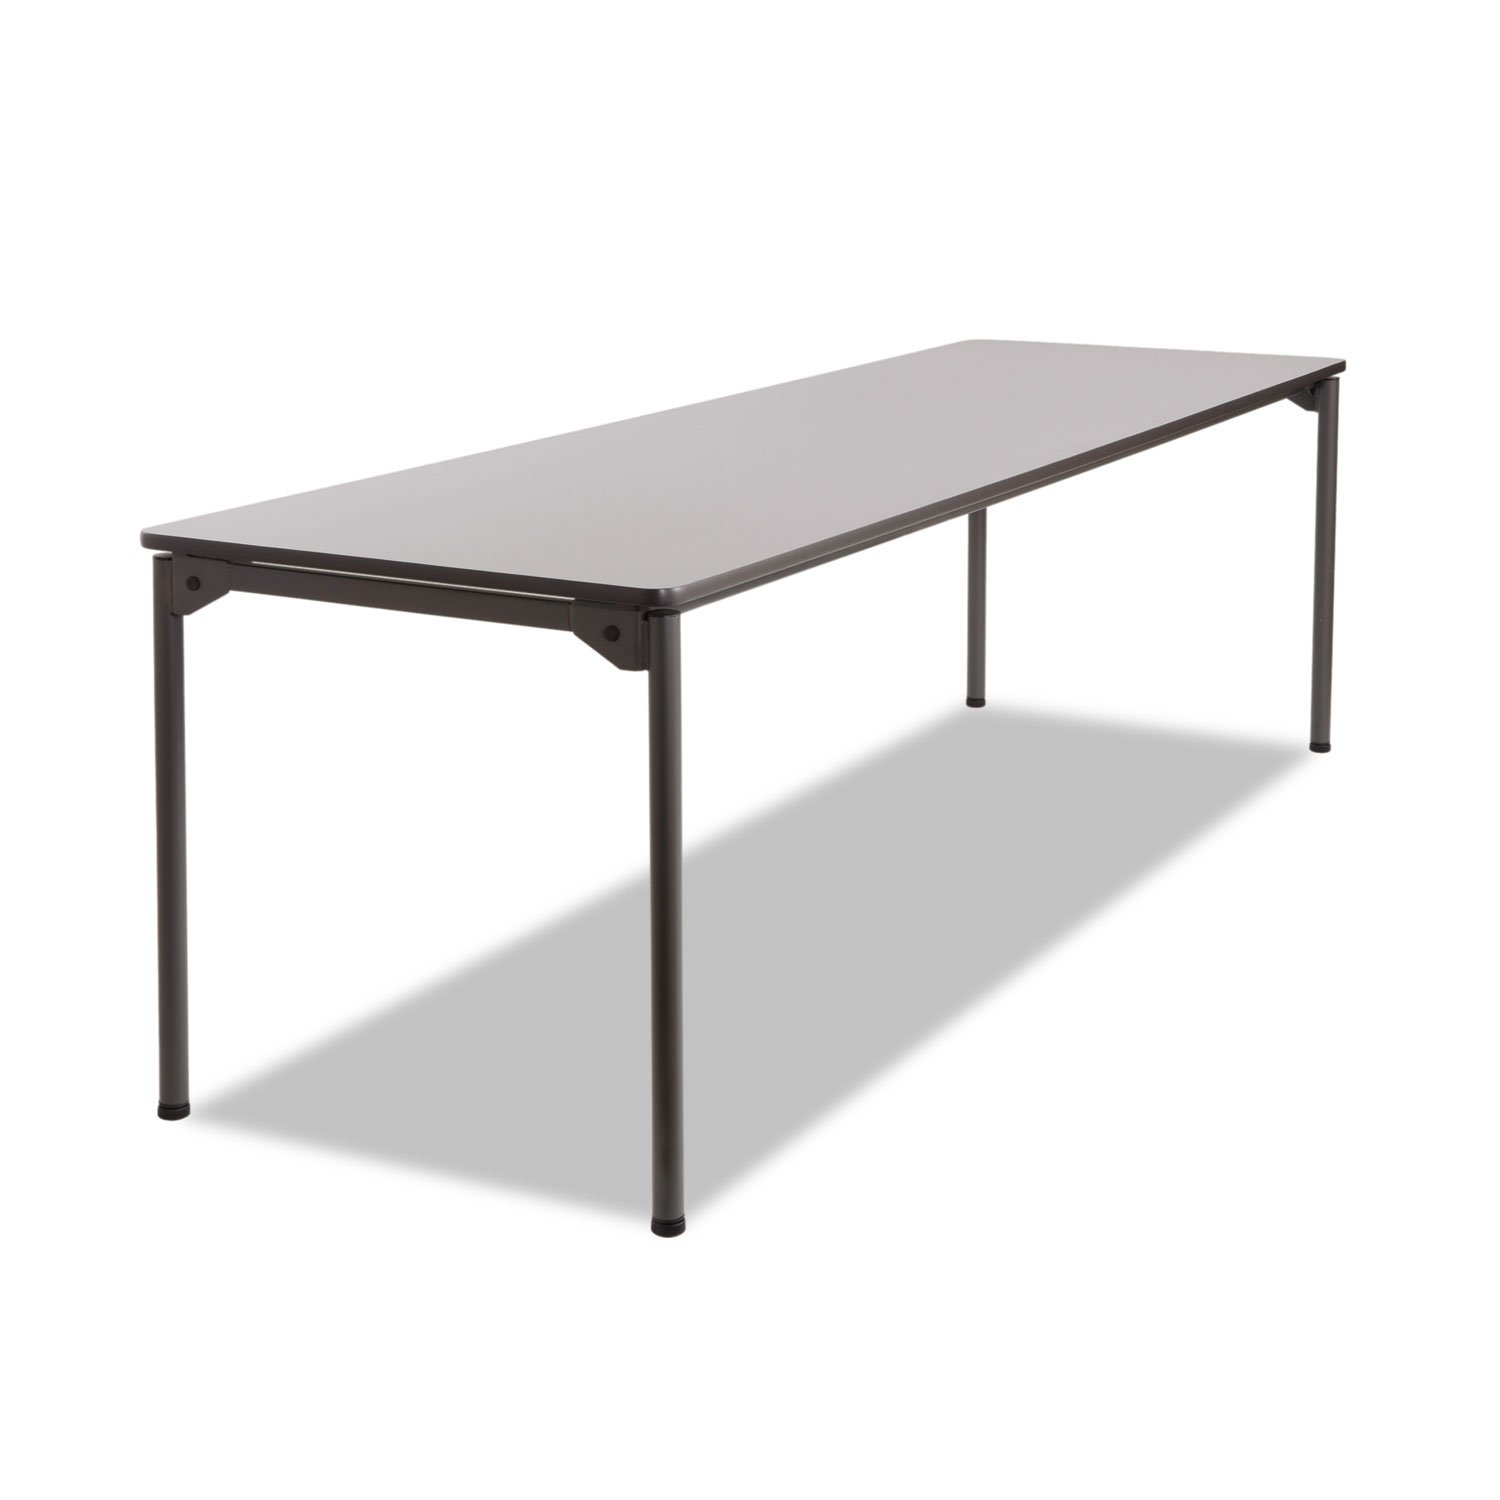 Iceberg 65837 Maxx Legroom Rectangular Folding Table, 96w x 30d x 29-1/2h, Gray/Charcoal